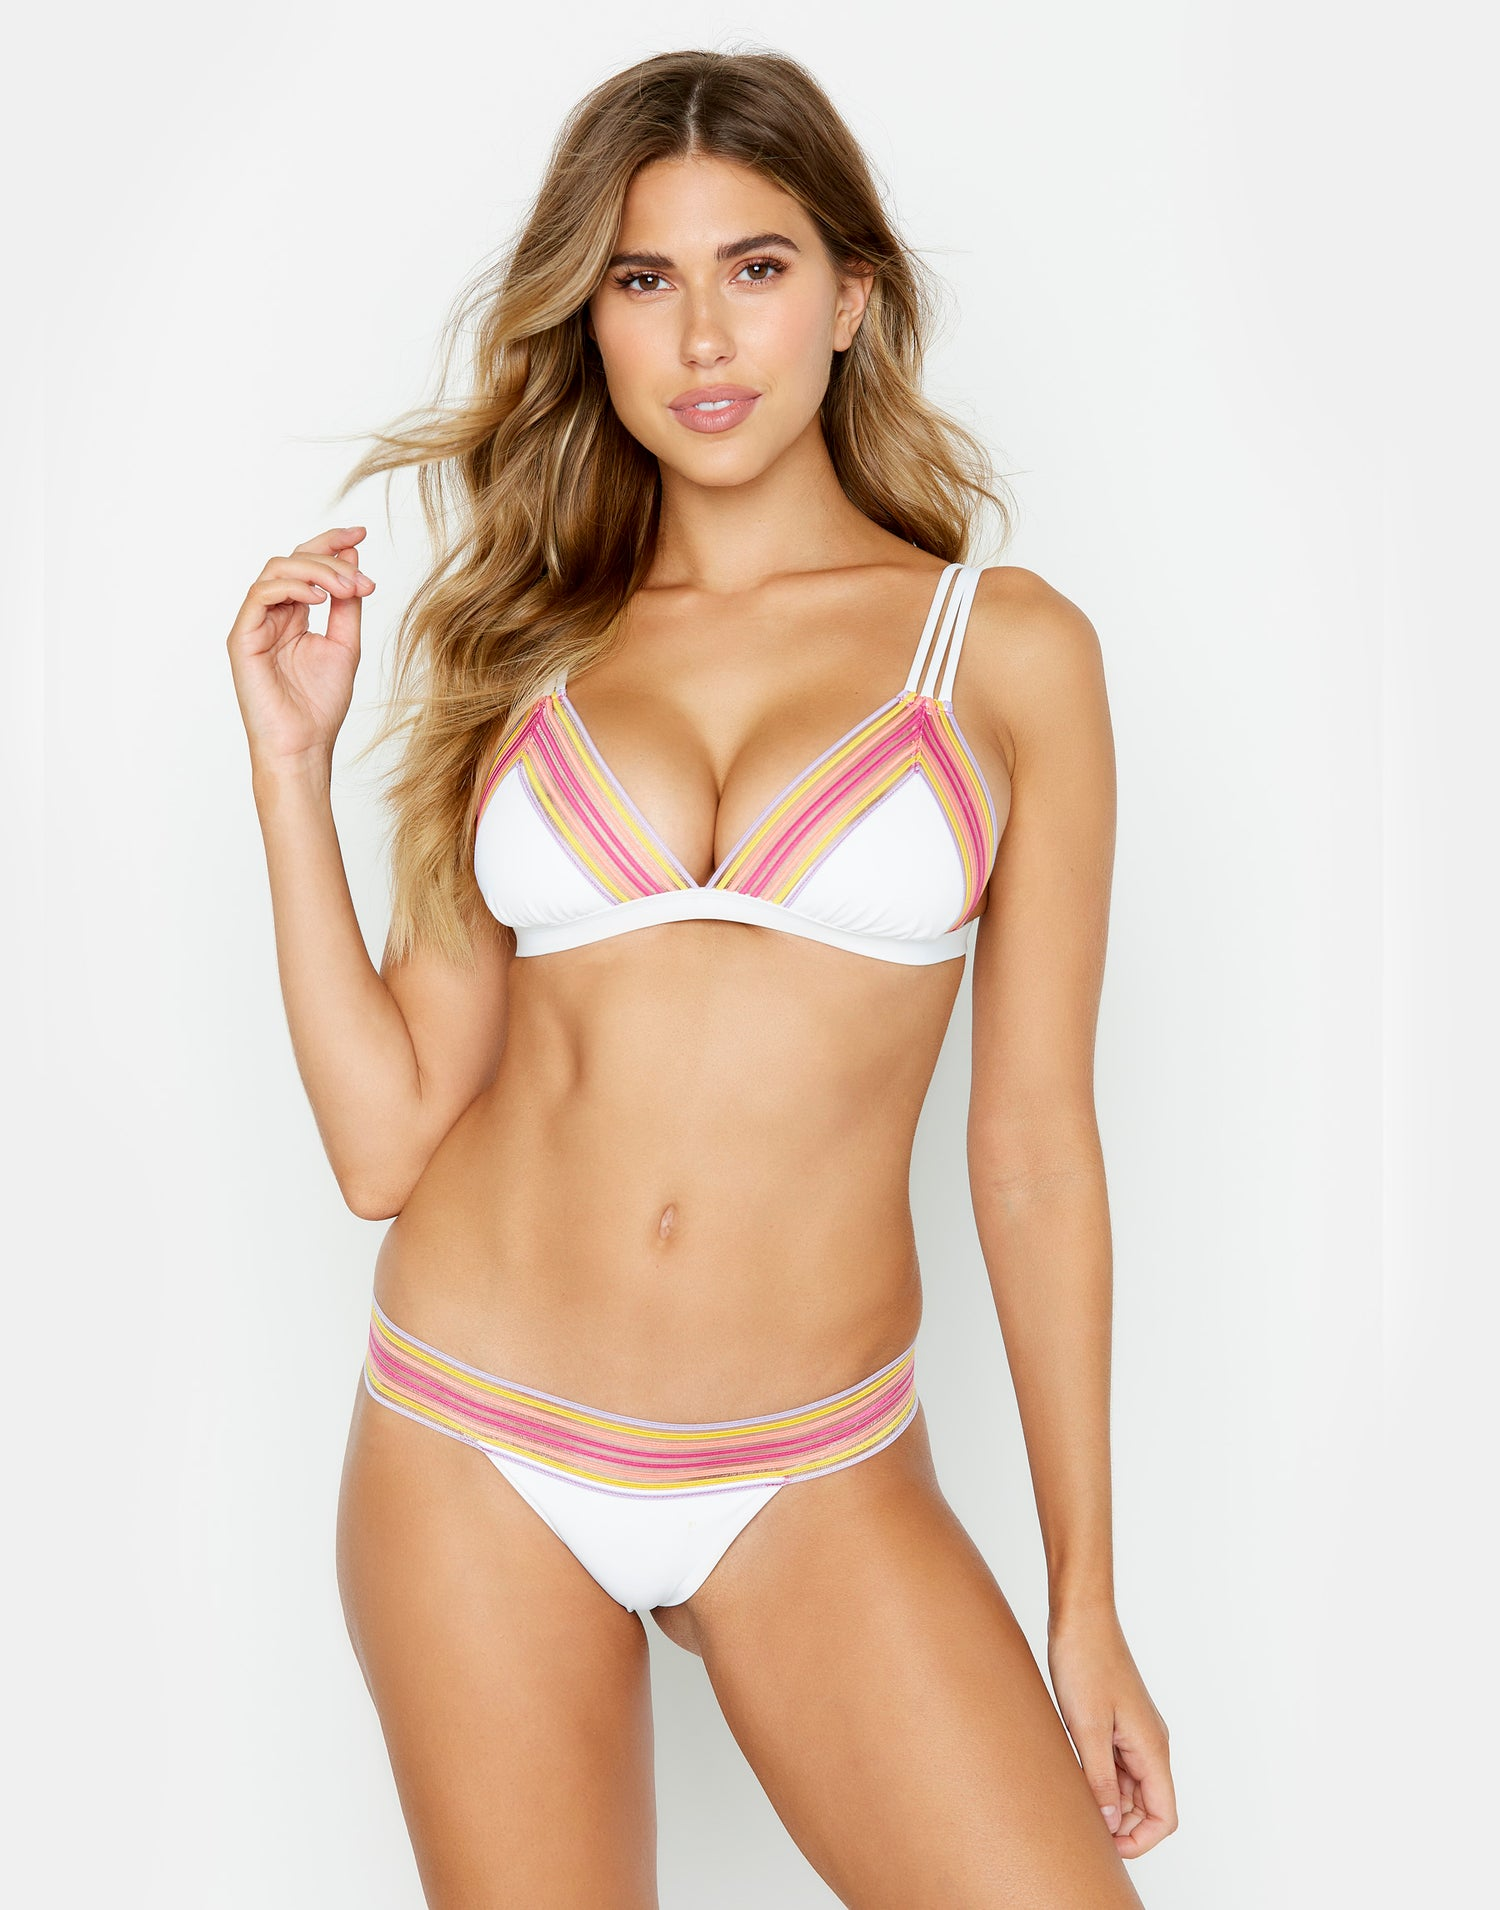 Sheer Addiction Skimpy Bikini Bottom in White with Pink/Yellow and Elastic Stripe Band - front view